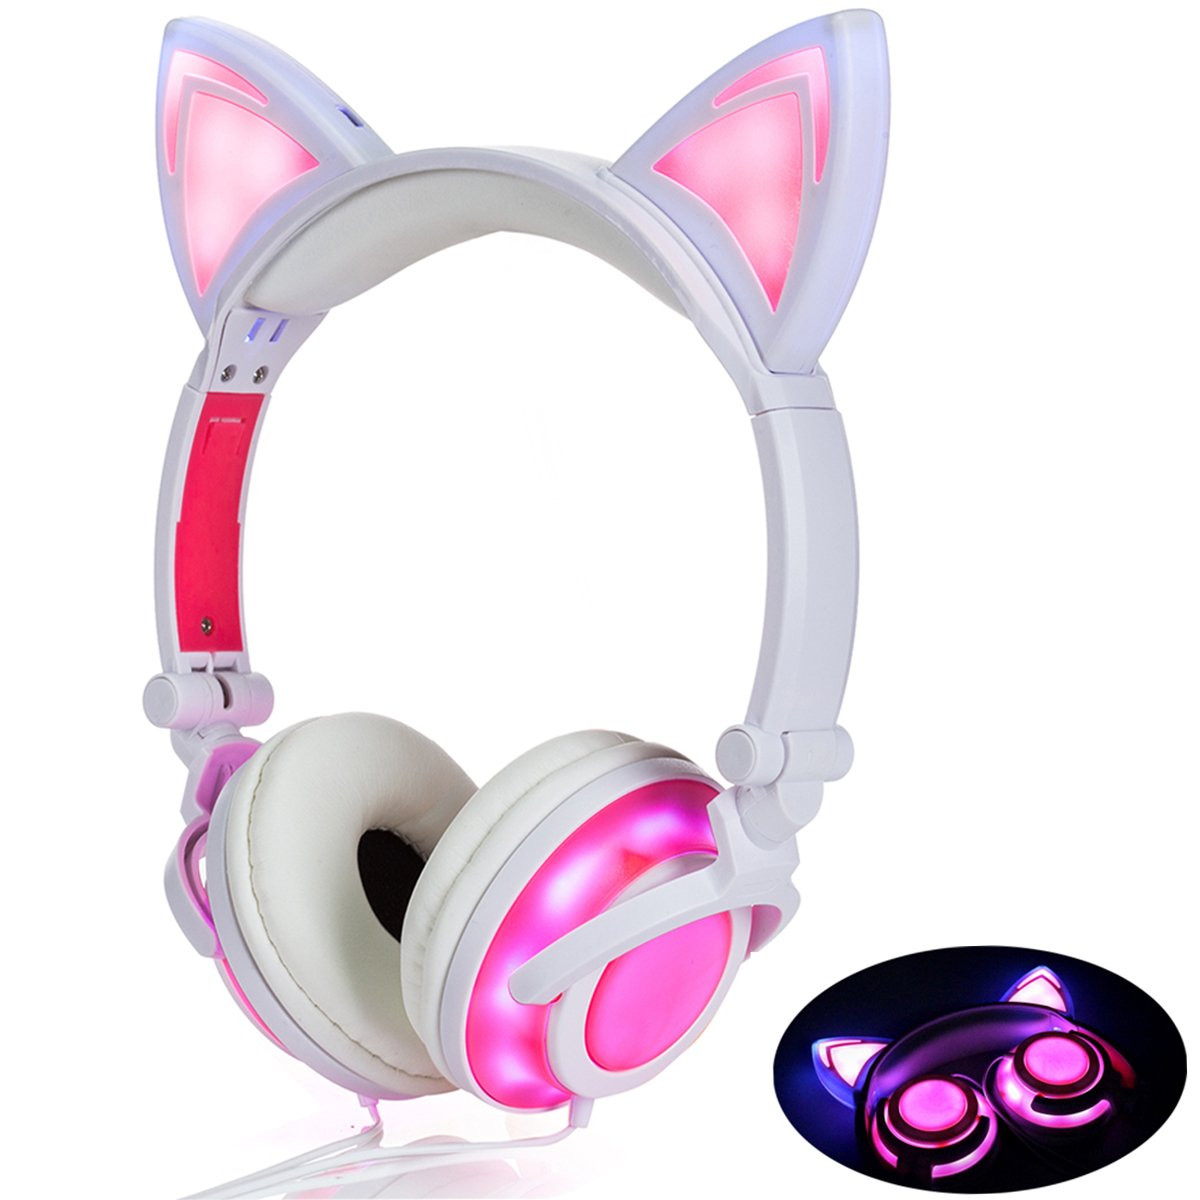 Headphone Cat Ear Headset,LED Light with USB Chargeable Foldable Earphones for Kids Teens Adults, Compatible for Ipad,Tablet,Computer,Mobile Phone LX-R107 (rose) LIMSON